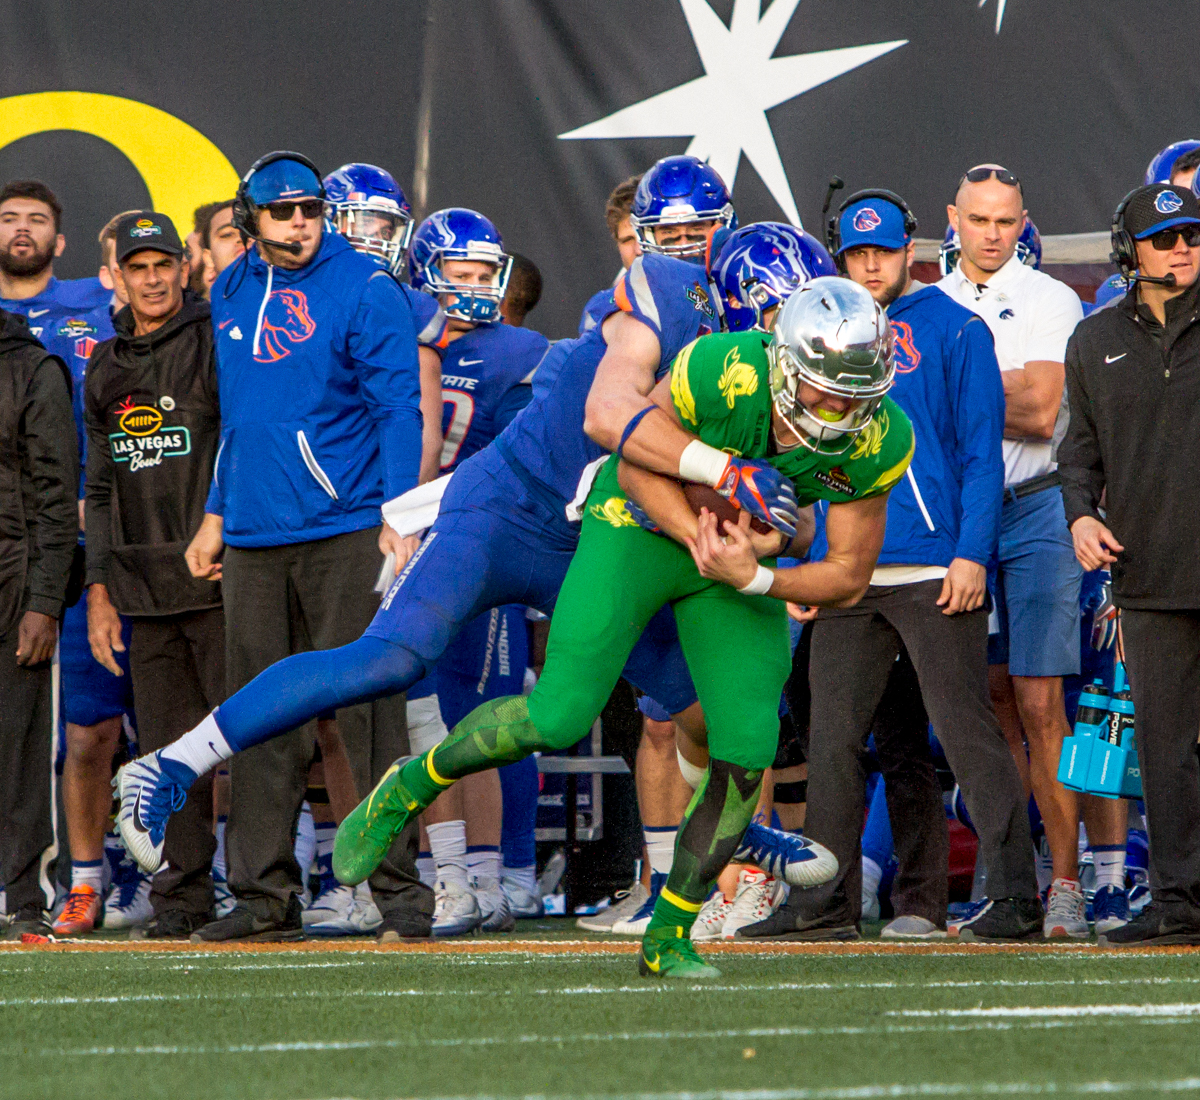 Oregon quarterback Justin Herbert (#10) is brought down by Boise State line backer Leighton Vander Esch (#38). The Boise State Broncos defeated the Oregon Ducks 38 to 28 in the 2017 Las Vegas Bowl at Sam Boyd Stadium in Las Vegas, Nevada on Saturday December 17, 2017. The Las Vegas Bowl served as the first test for Oregon's new Head Coach Mario Cristobal following the loss of former Head Coach Willie Taggart to Florida State University earlier this month. Photo by Ben Lonergan, Oregon News Lab